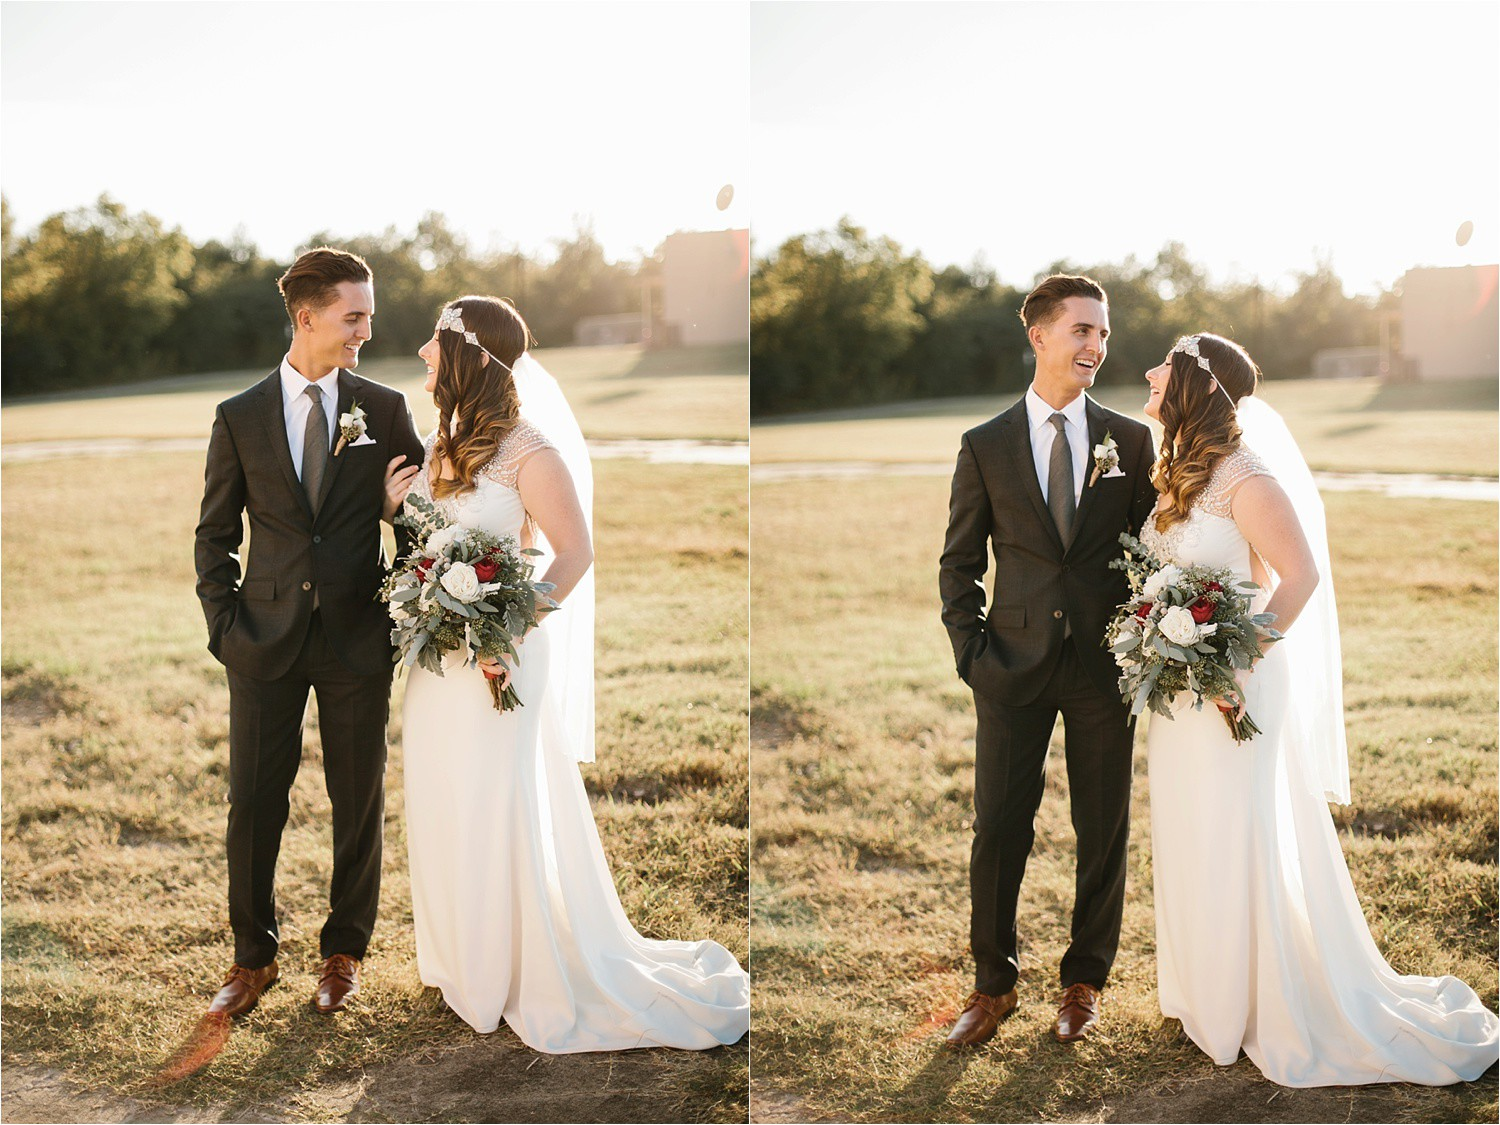 whittney-drew-__-an-intimate-wine-and-navy-wedding-in-an-industrial-venue-at-loft-123-in-paris-tx-by-north-texas-wedding-photographer-rachel-meagan-photography-_-066